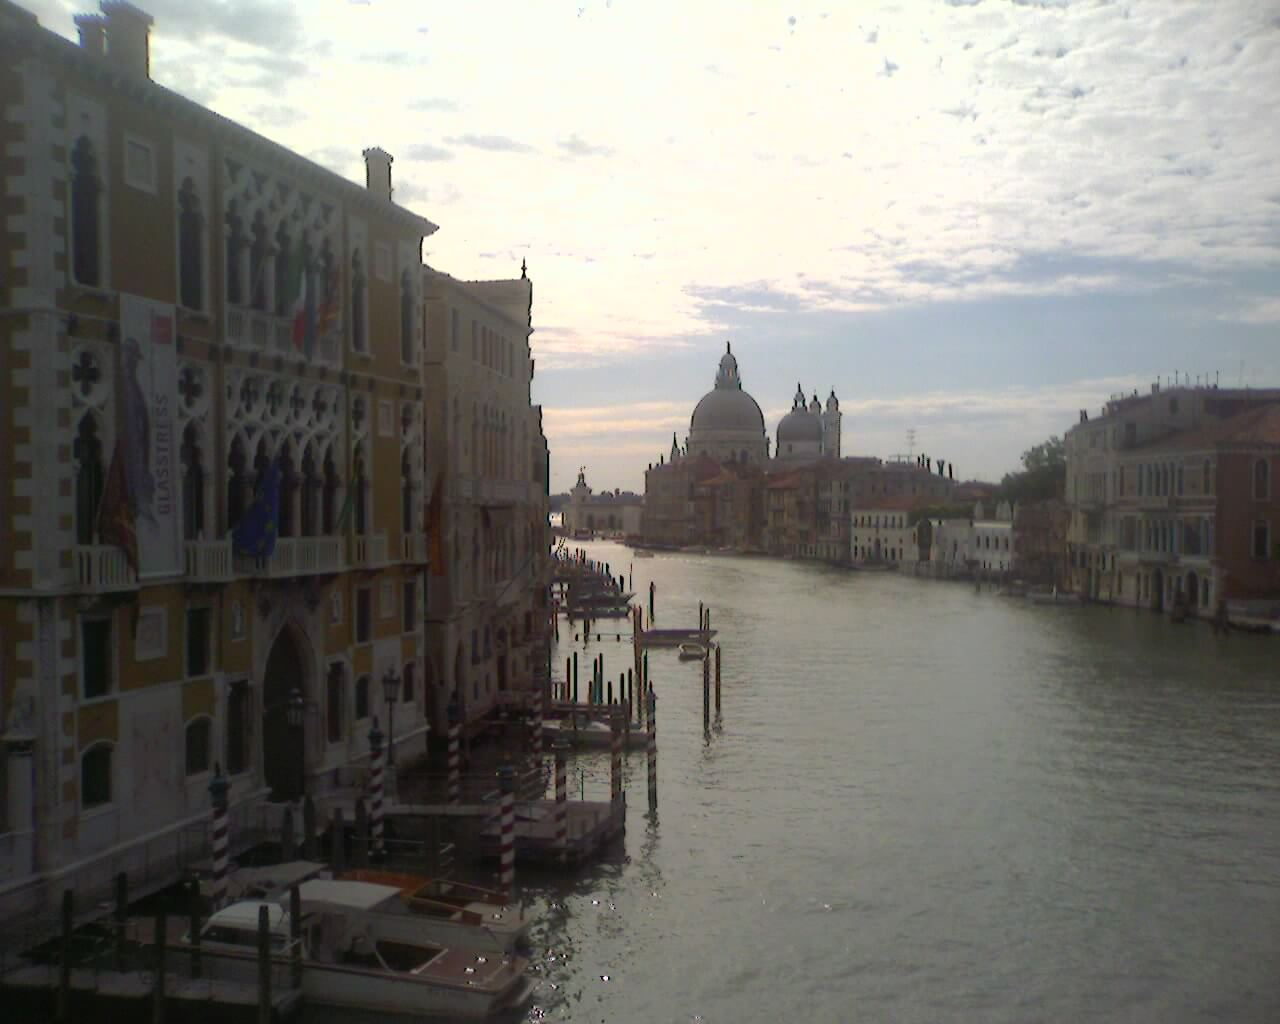 Do stay in central Venice rather than the Mestre. Just moderate your hotel requirements to suit your budget